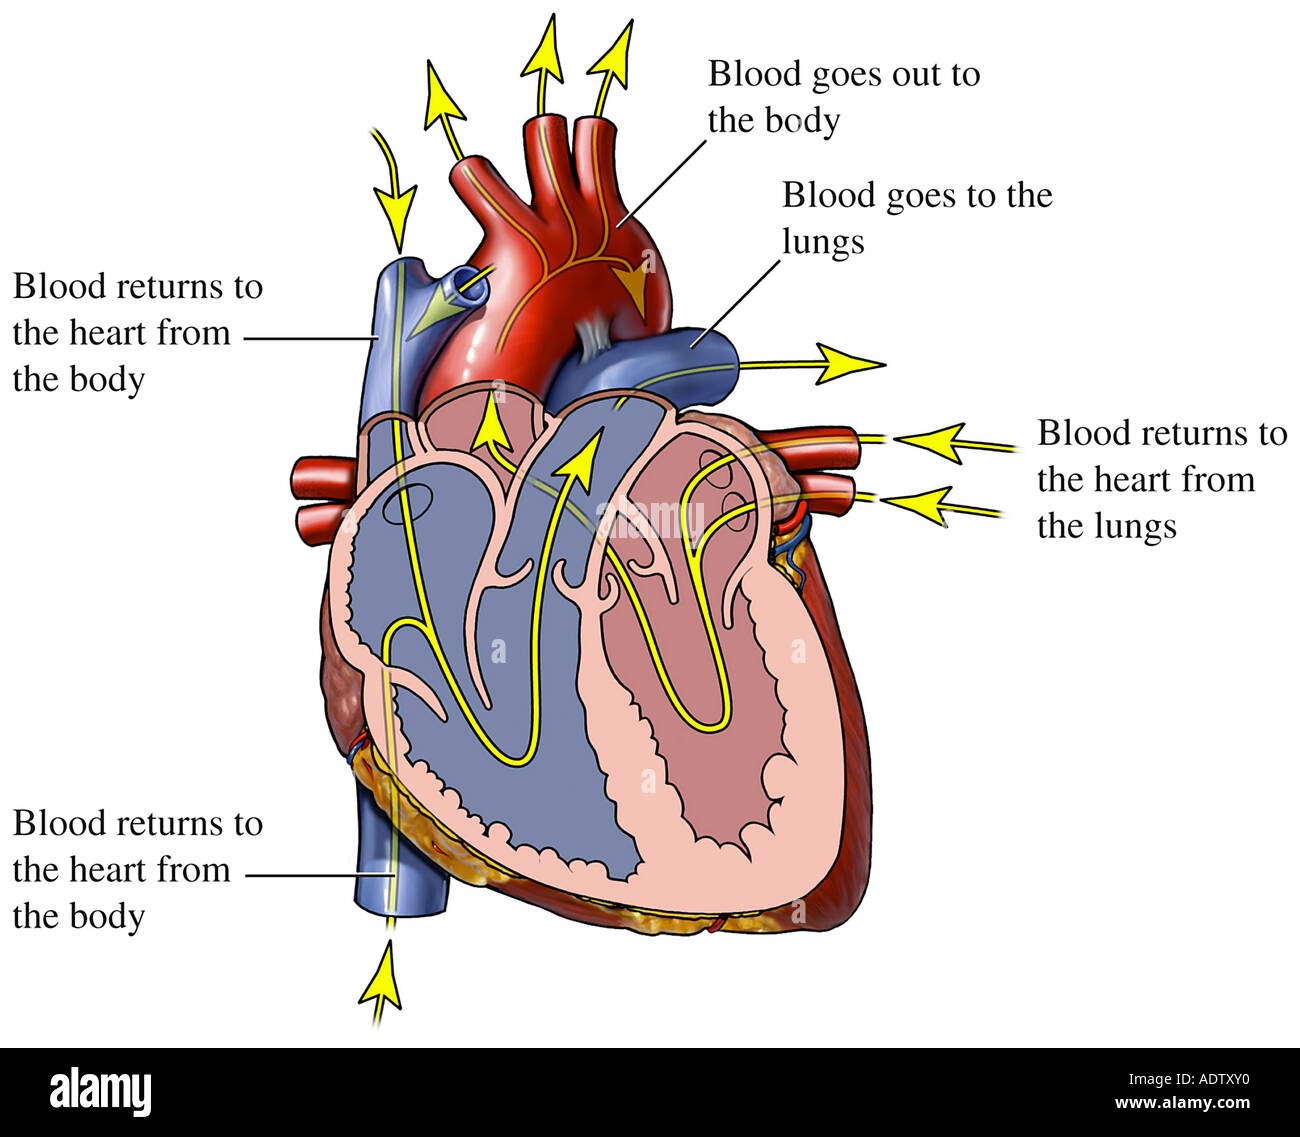 Blood Flow Through The Heart Stock Photo 7710767 Alamy